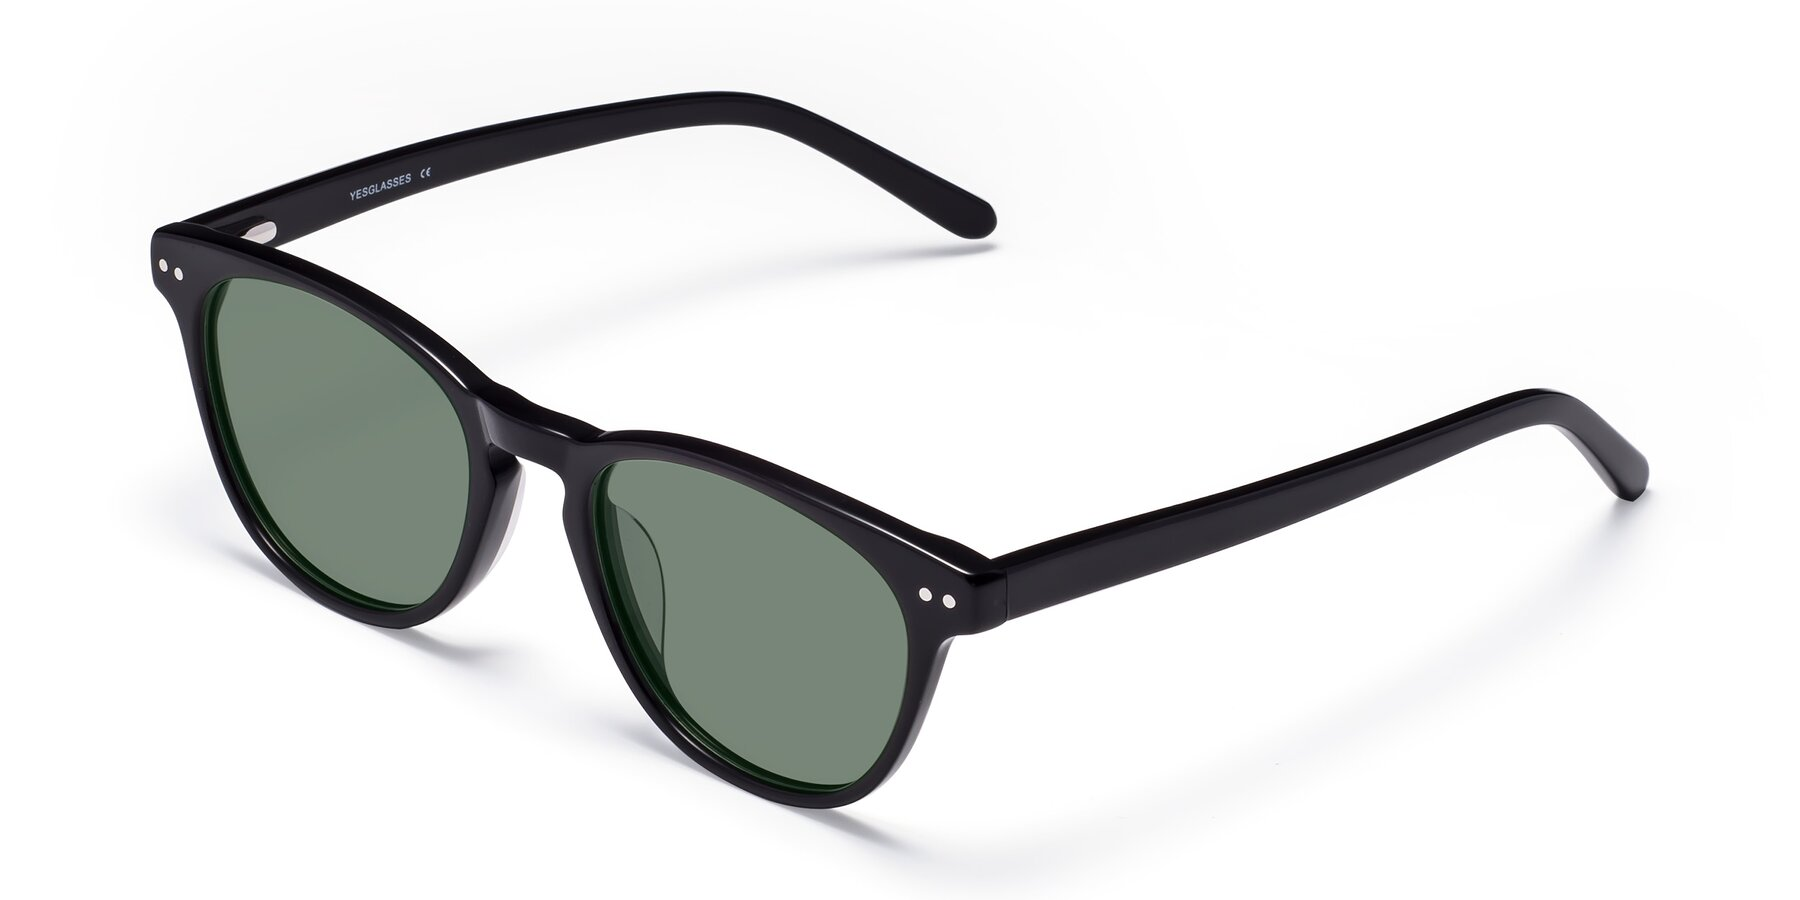 Angle of Blaze in Black with Medium Green Tinted Lenses